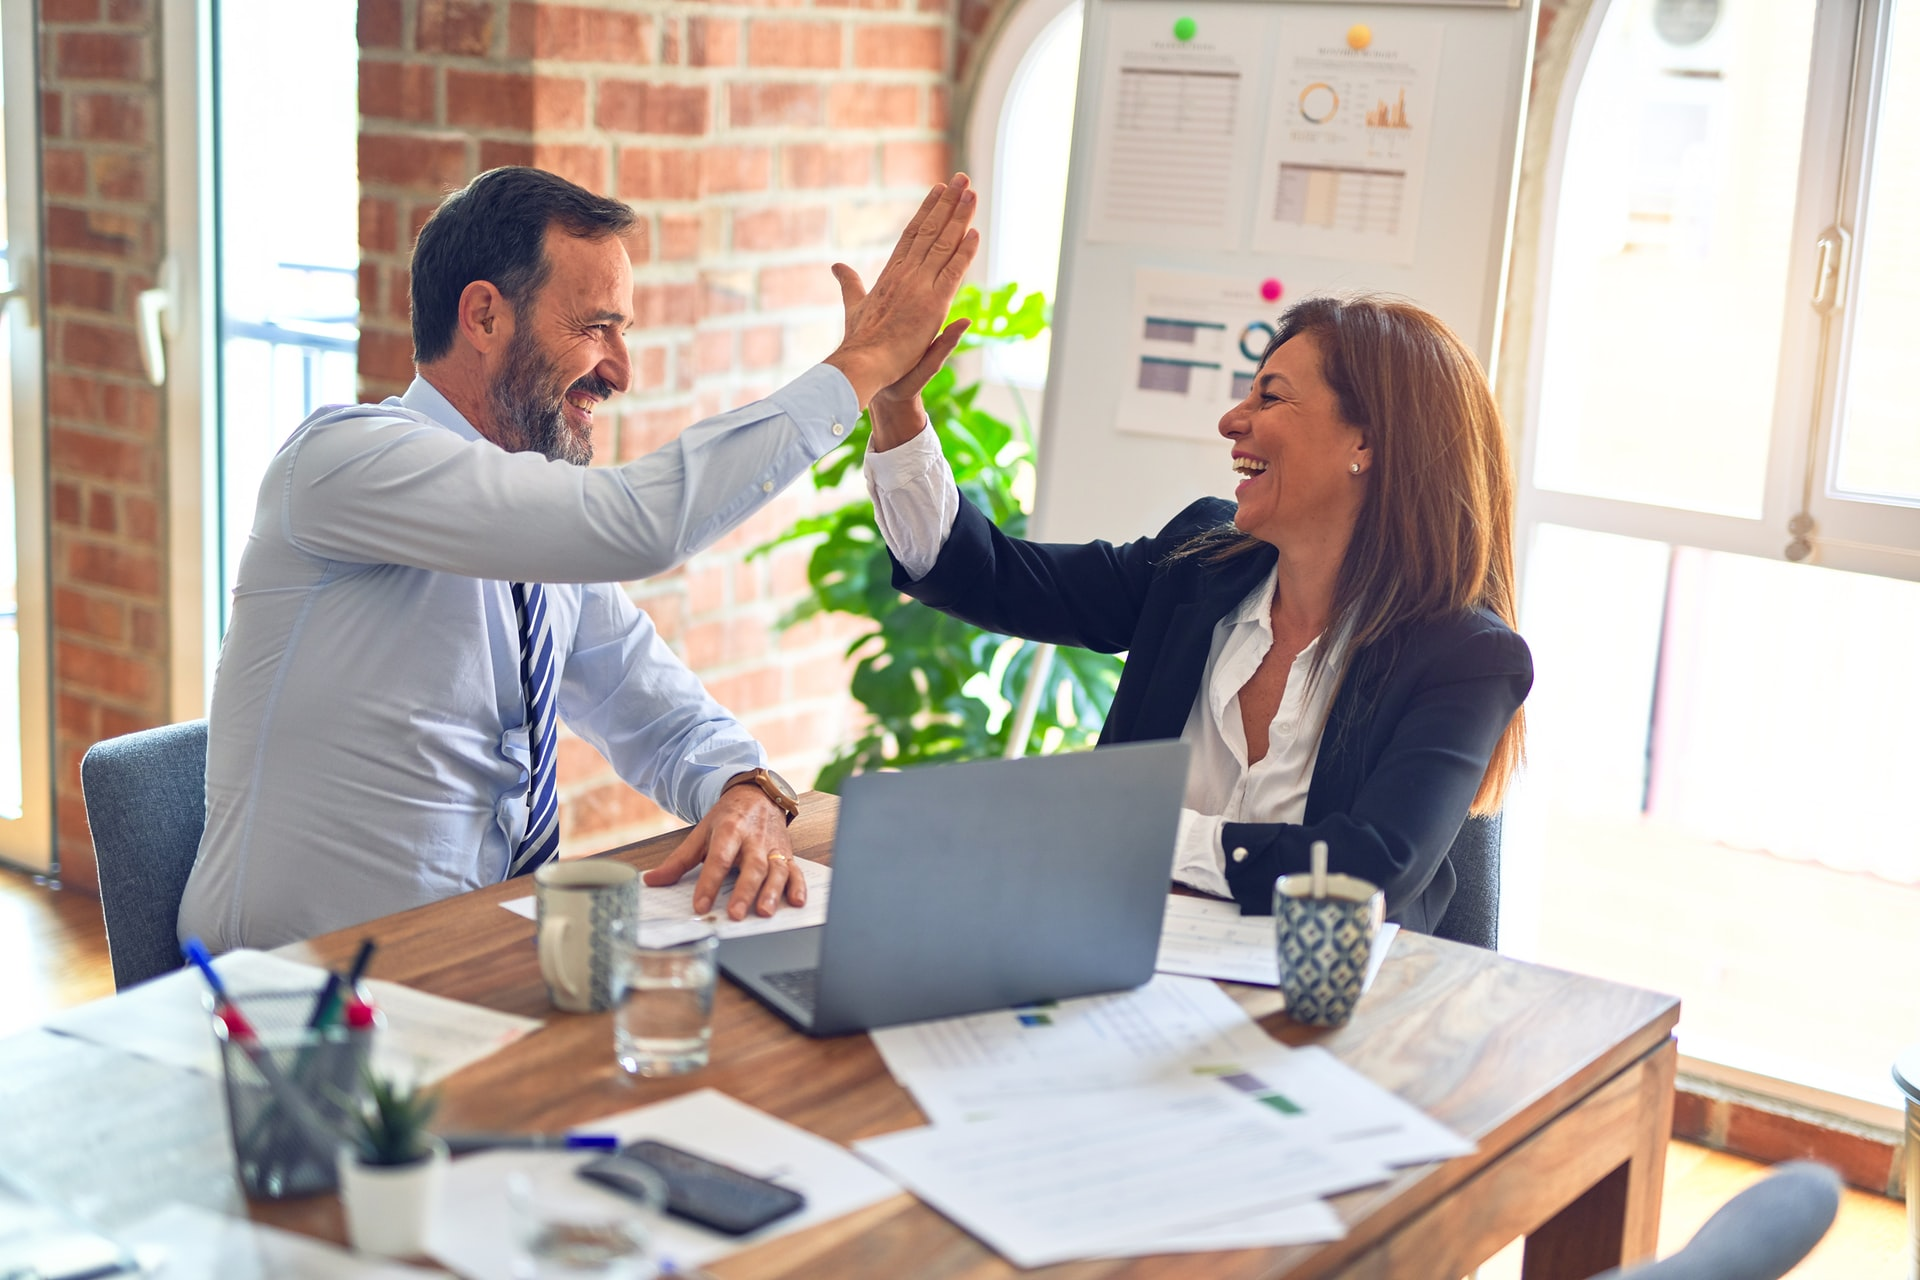 man and woman in business attire high five over a completed project